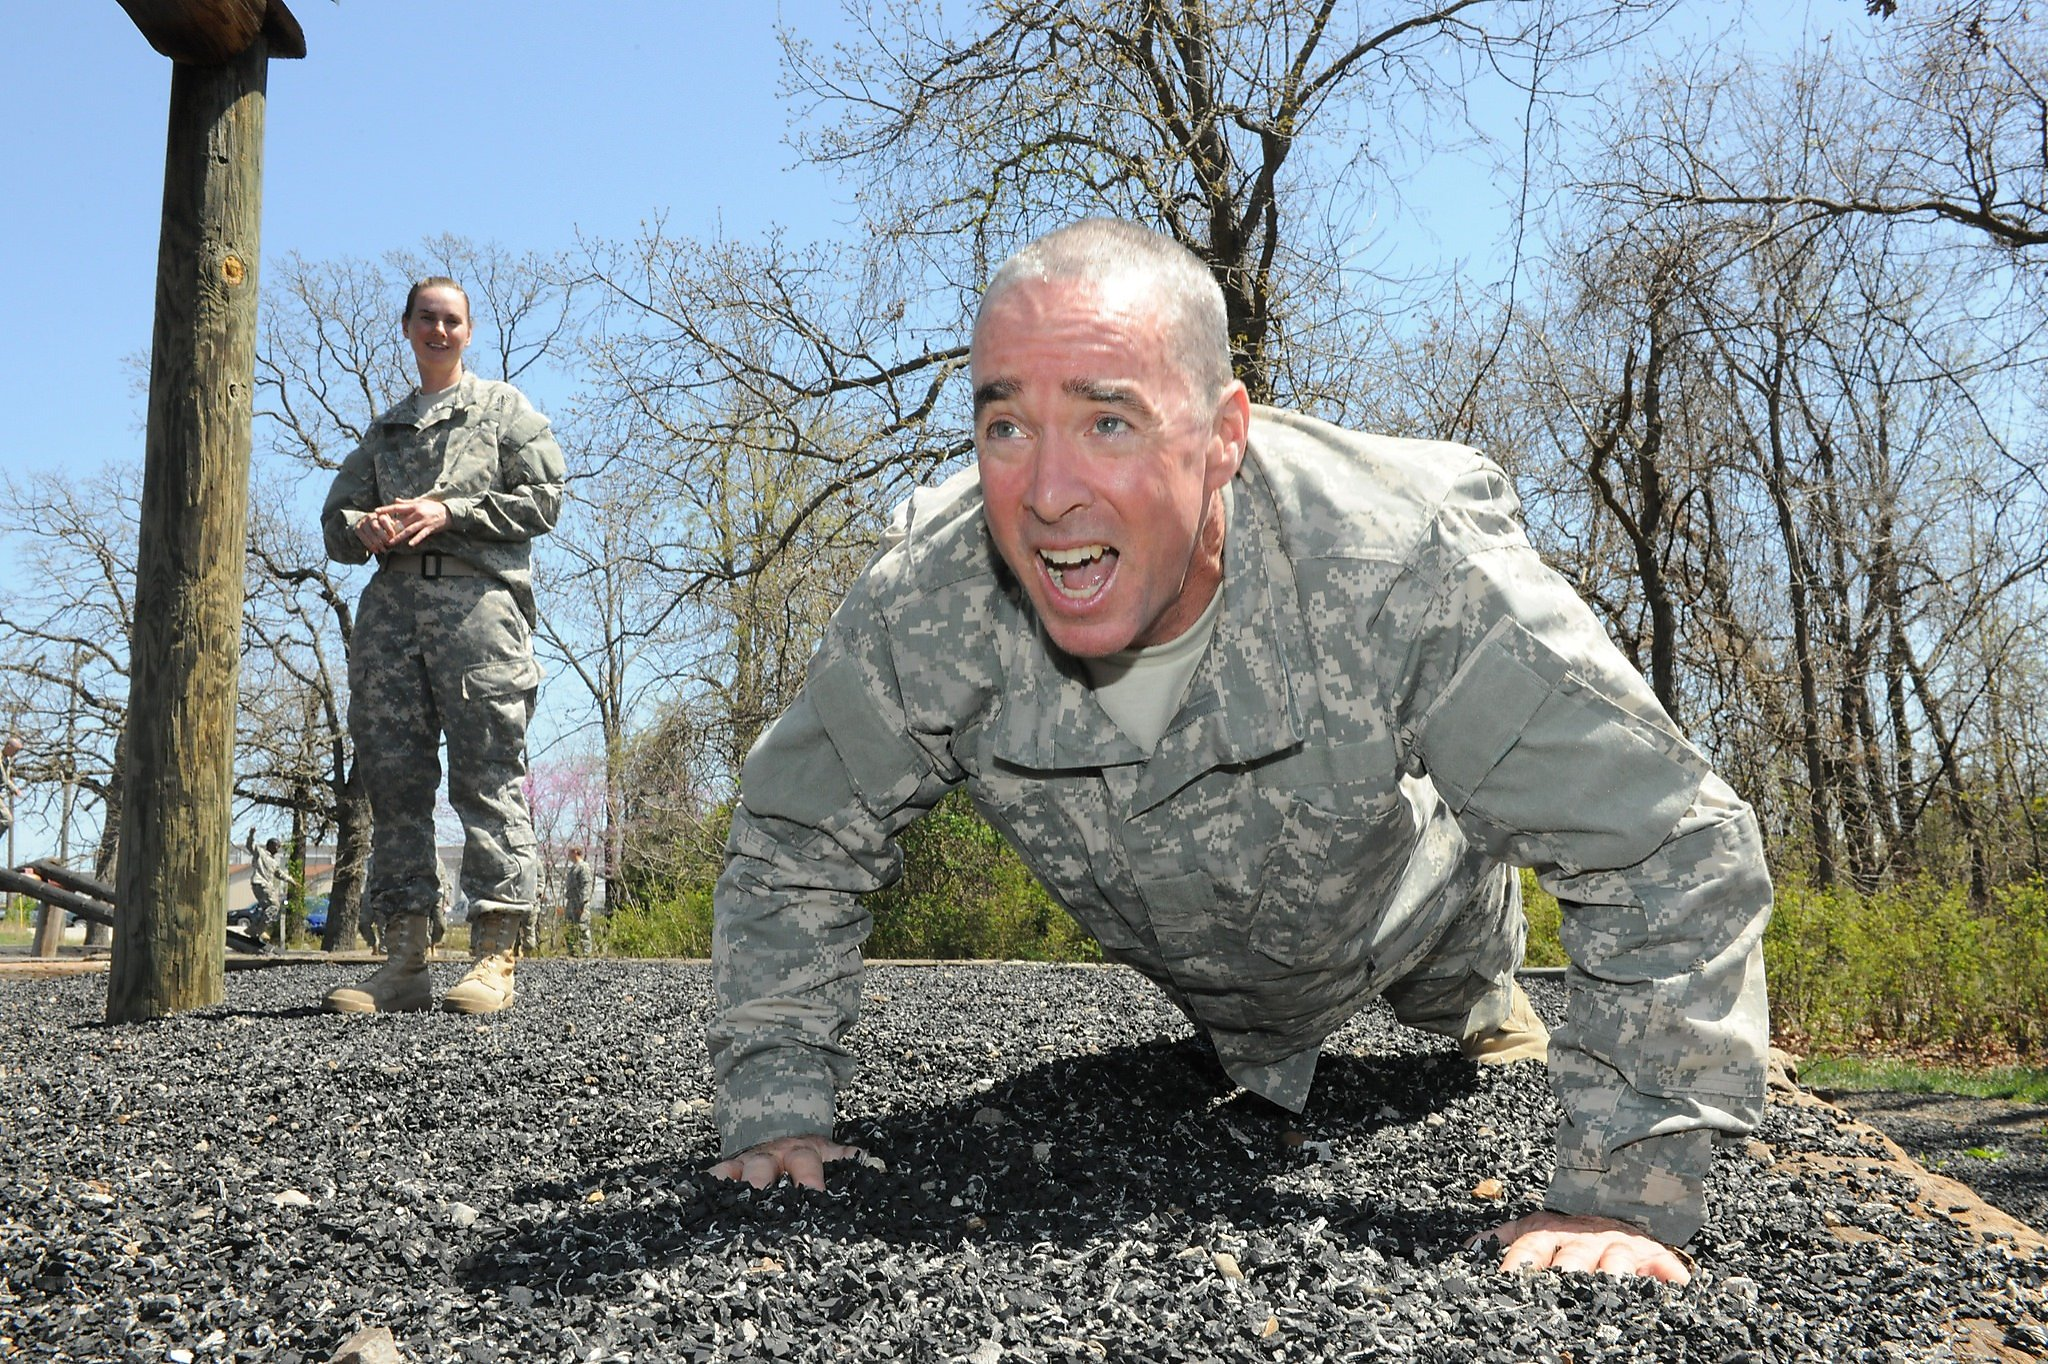 Soldier, 55, about to graduate from combat basic training